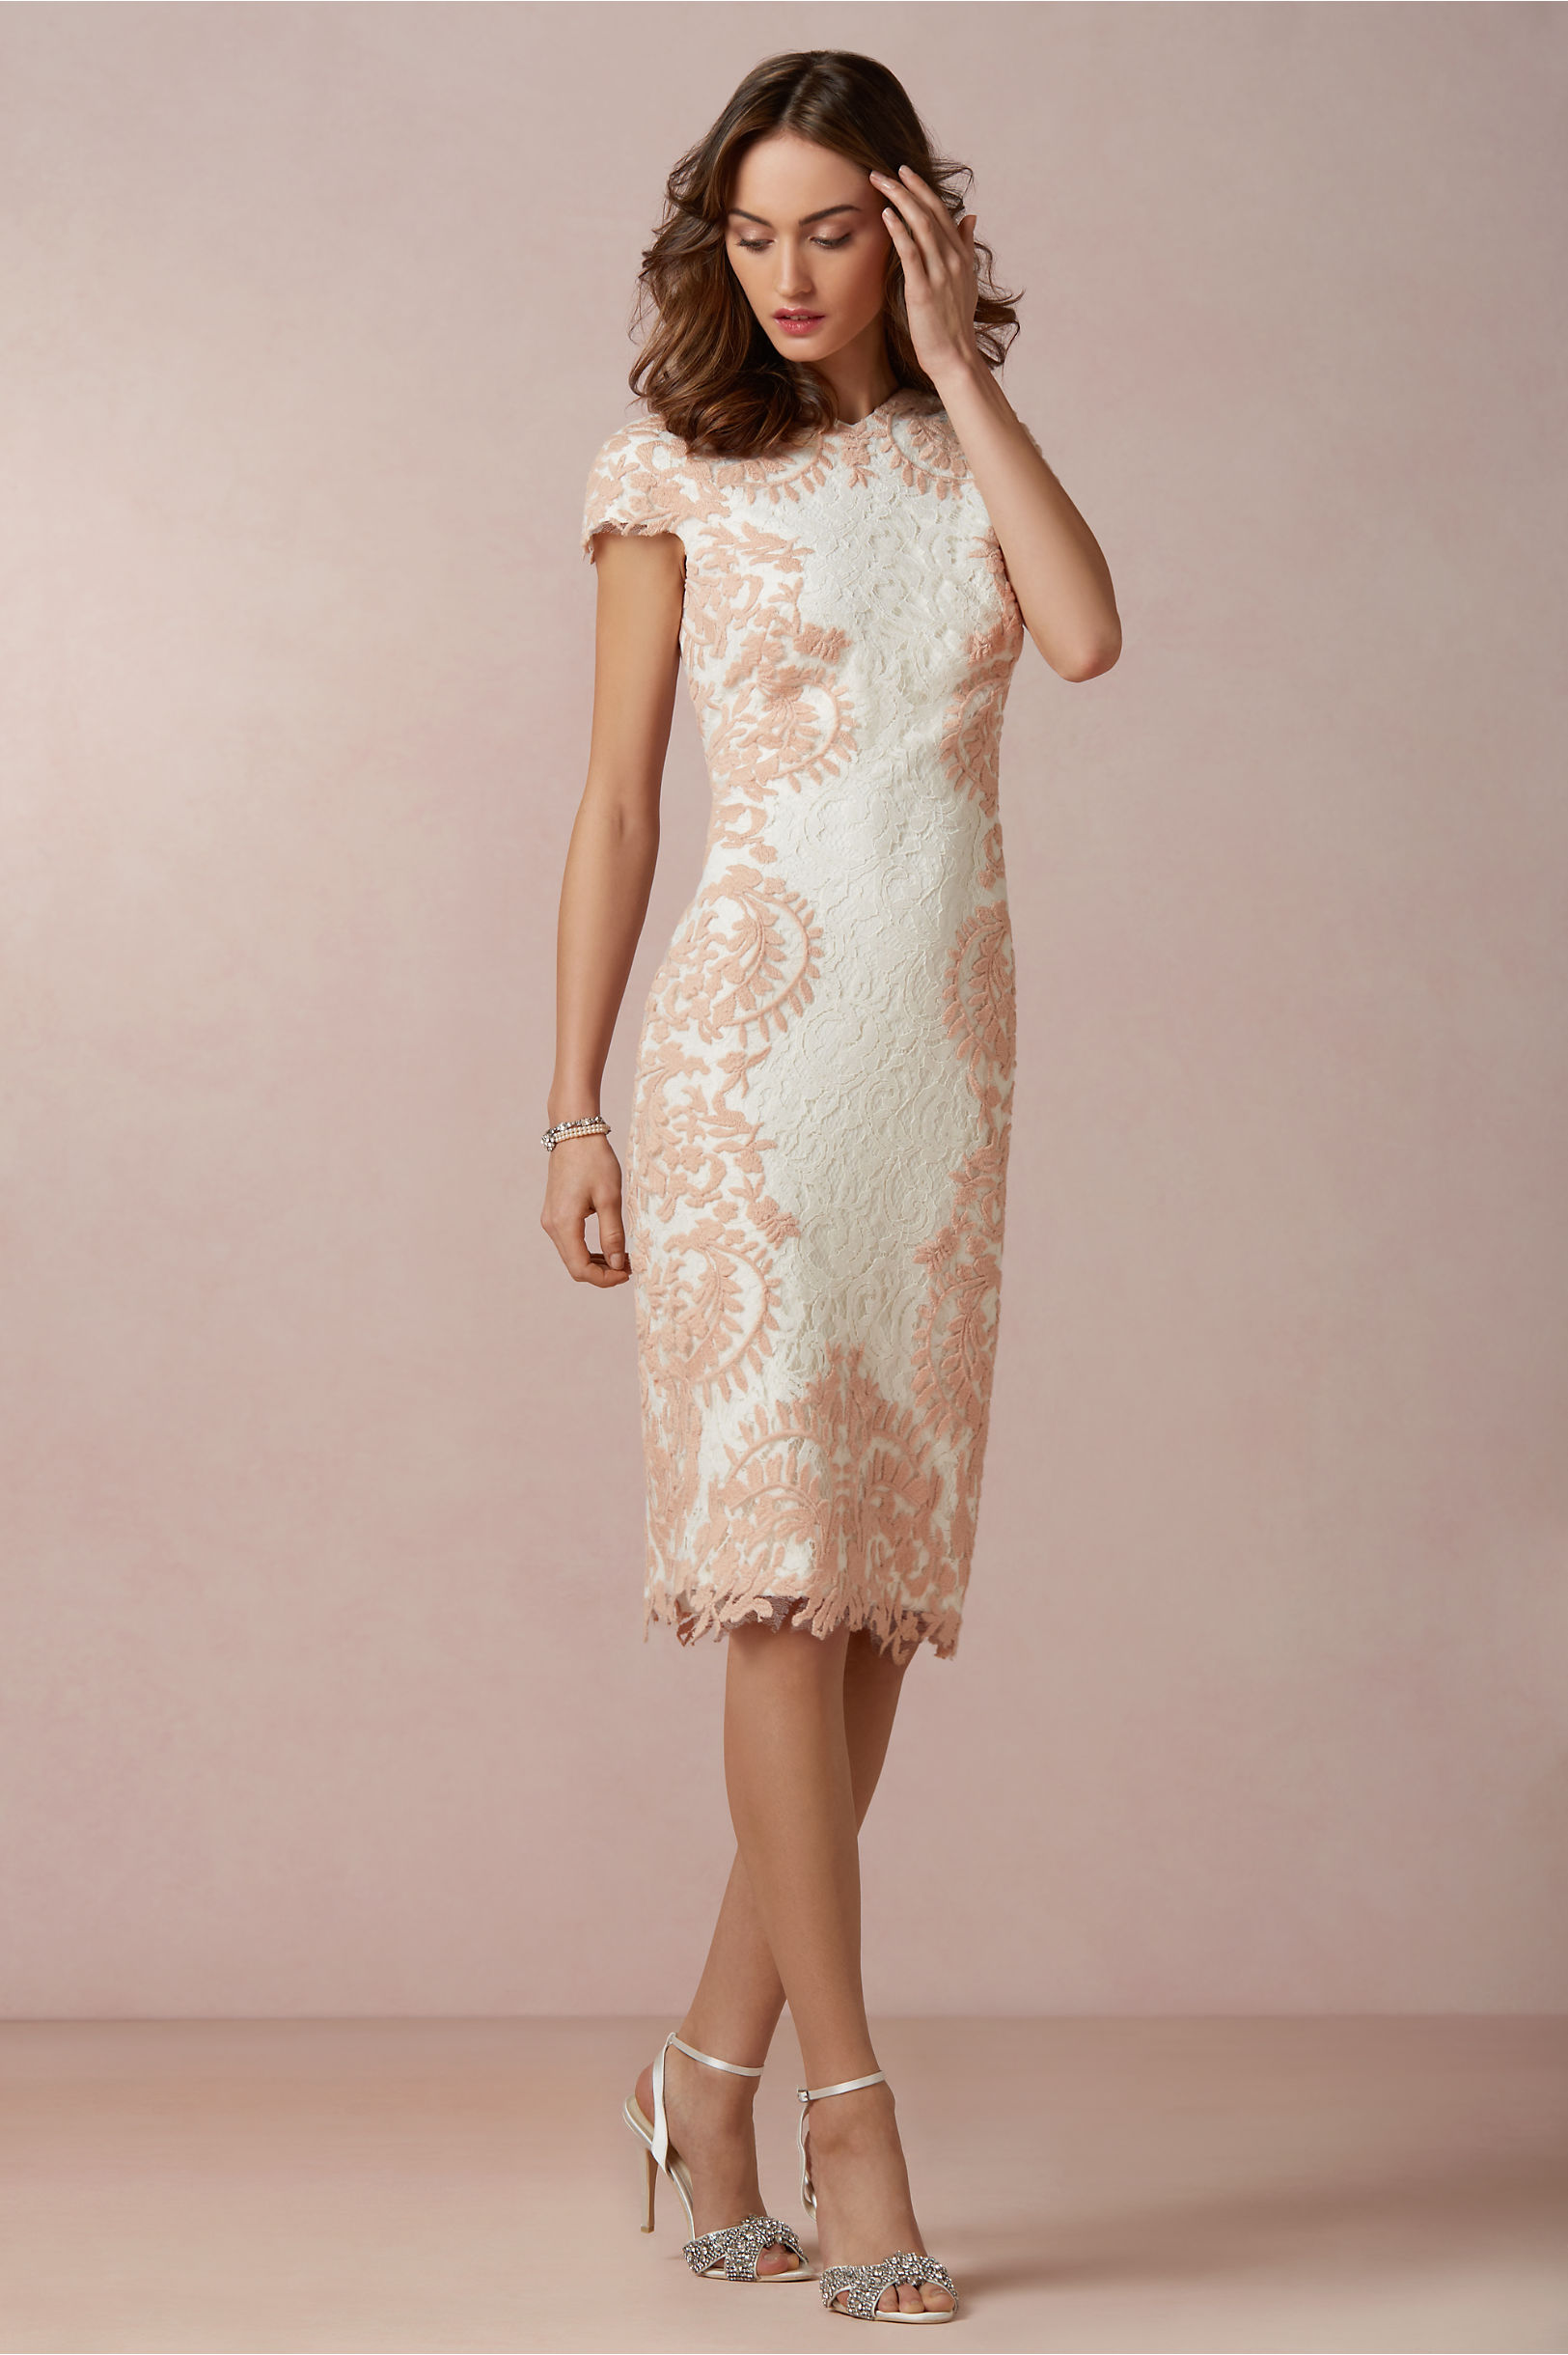 Catalina Dress in Occasion Dresses | BHLDN